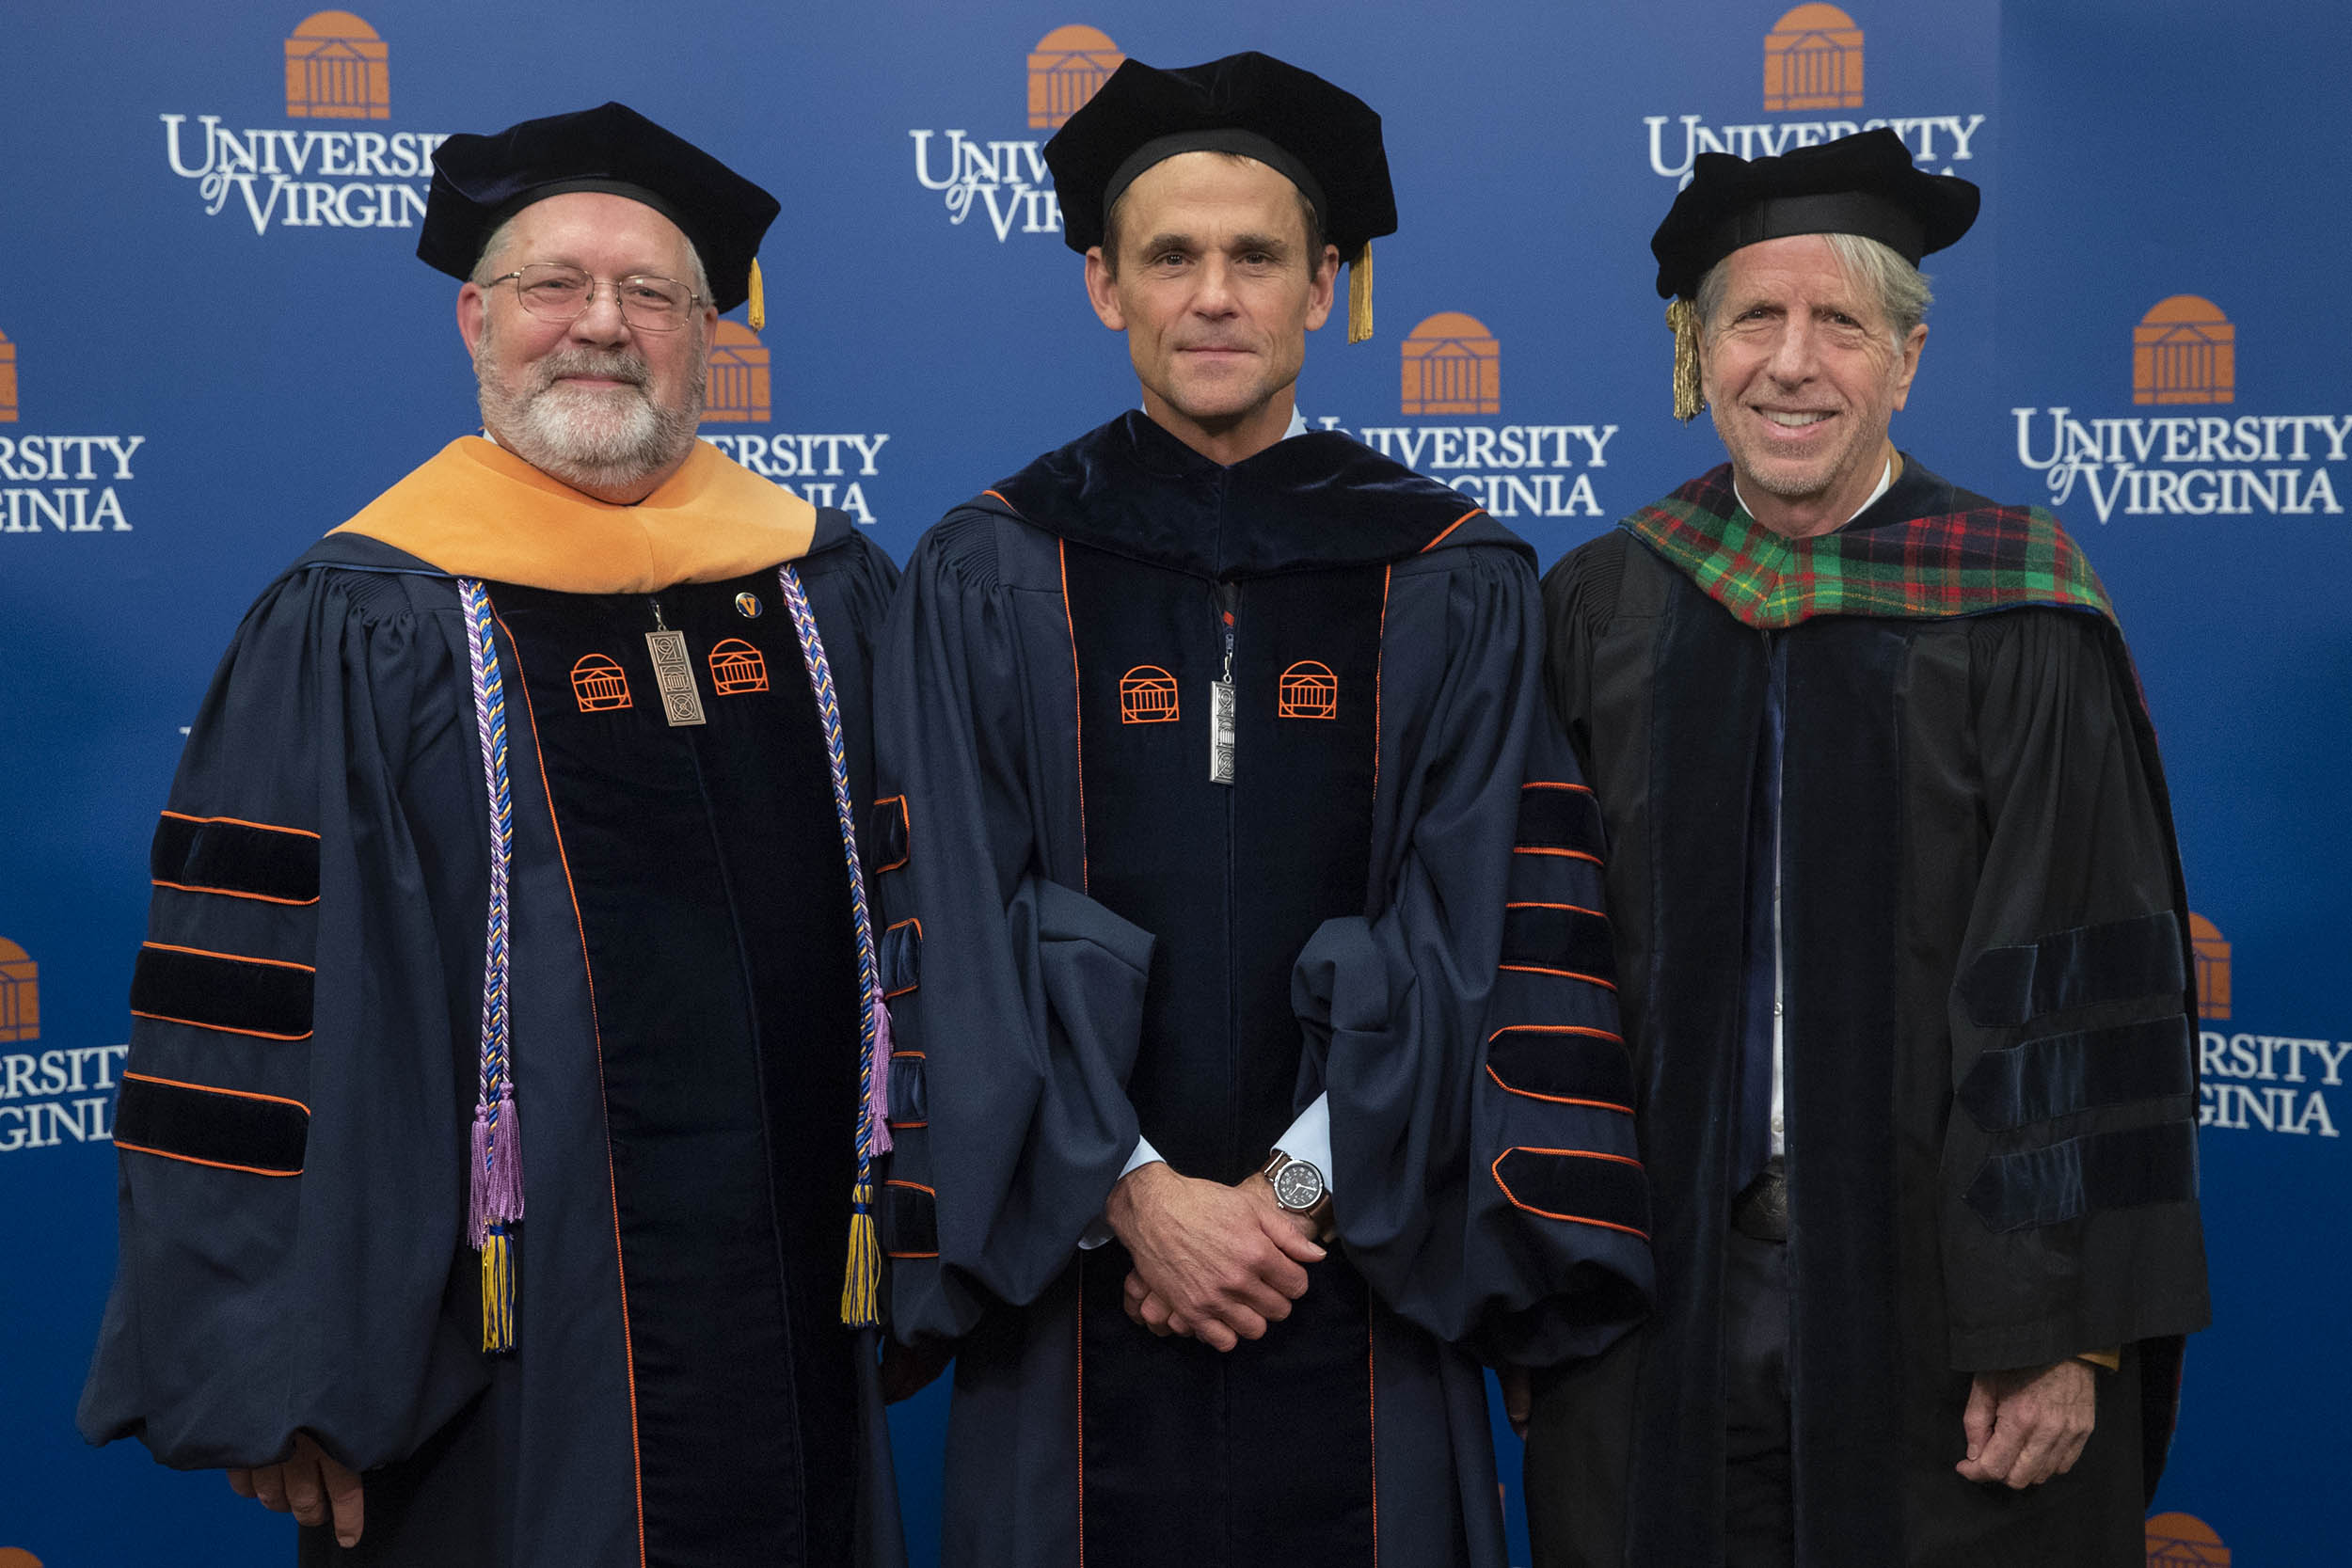 UVA President Jim Ryan, center, bestowed the University's Thomas Jefferson Awards upon Richard Carpenter (service), left, and Charles Holt (scholarship).